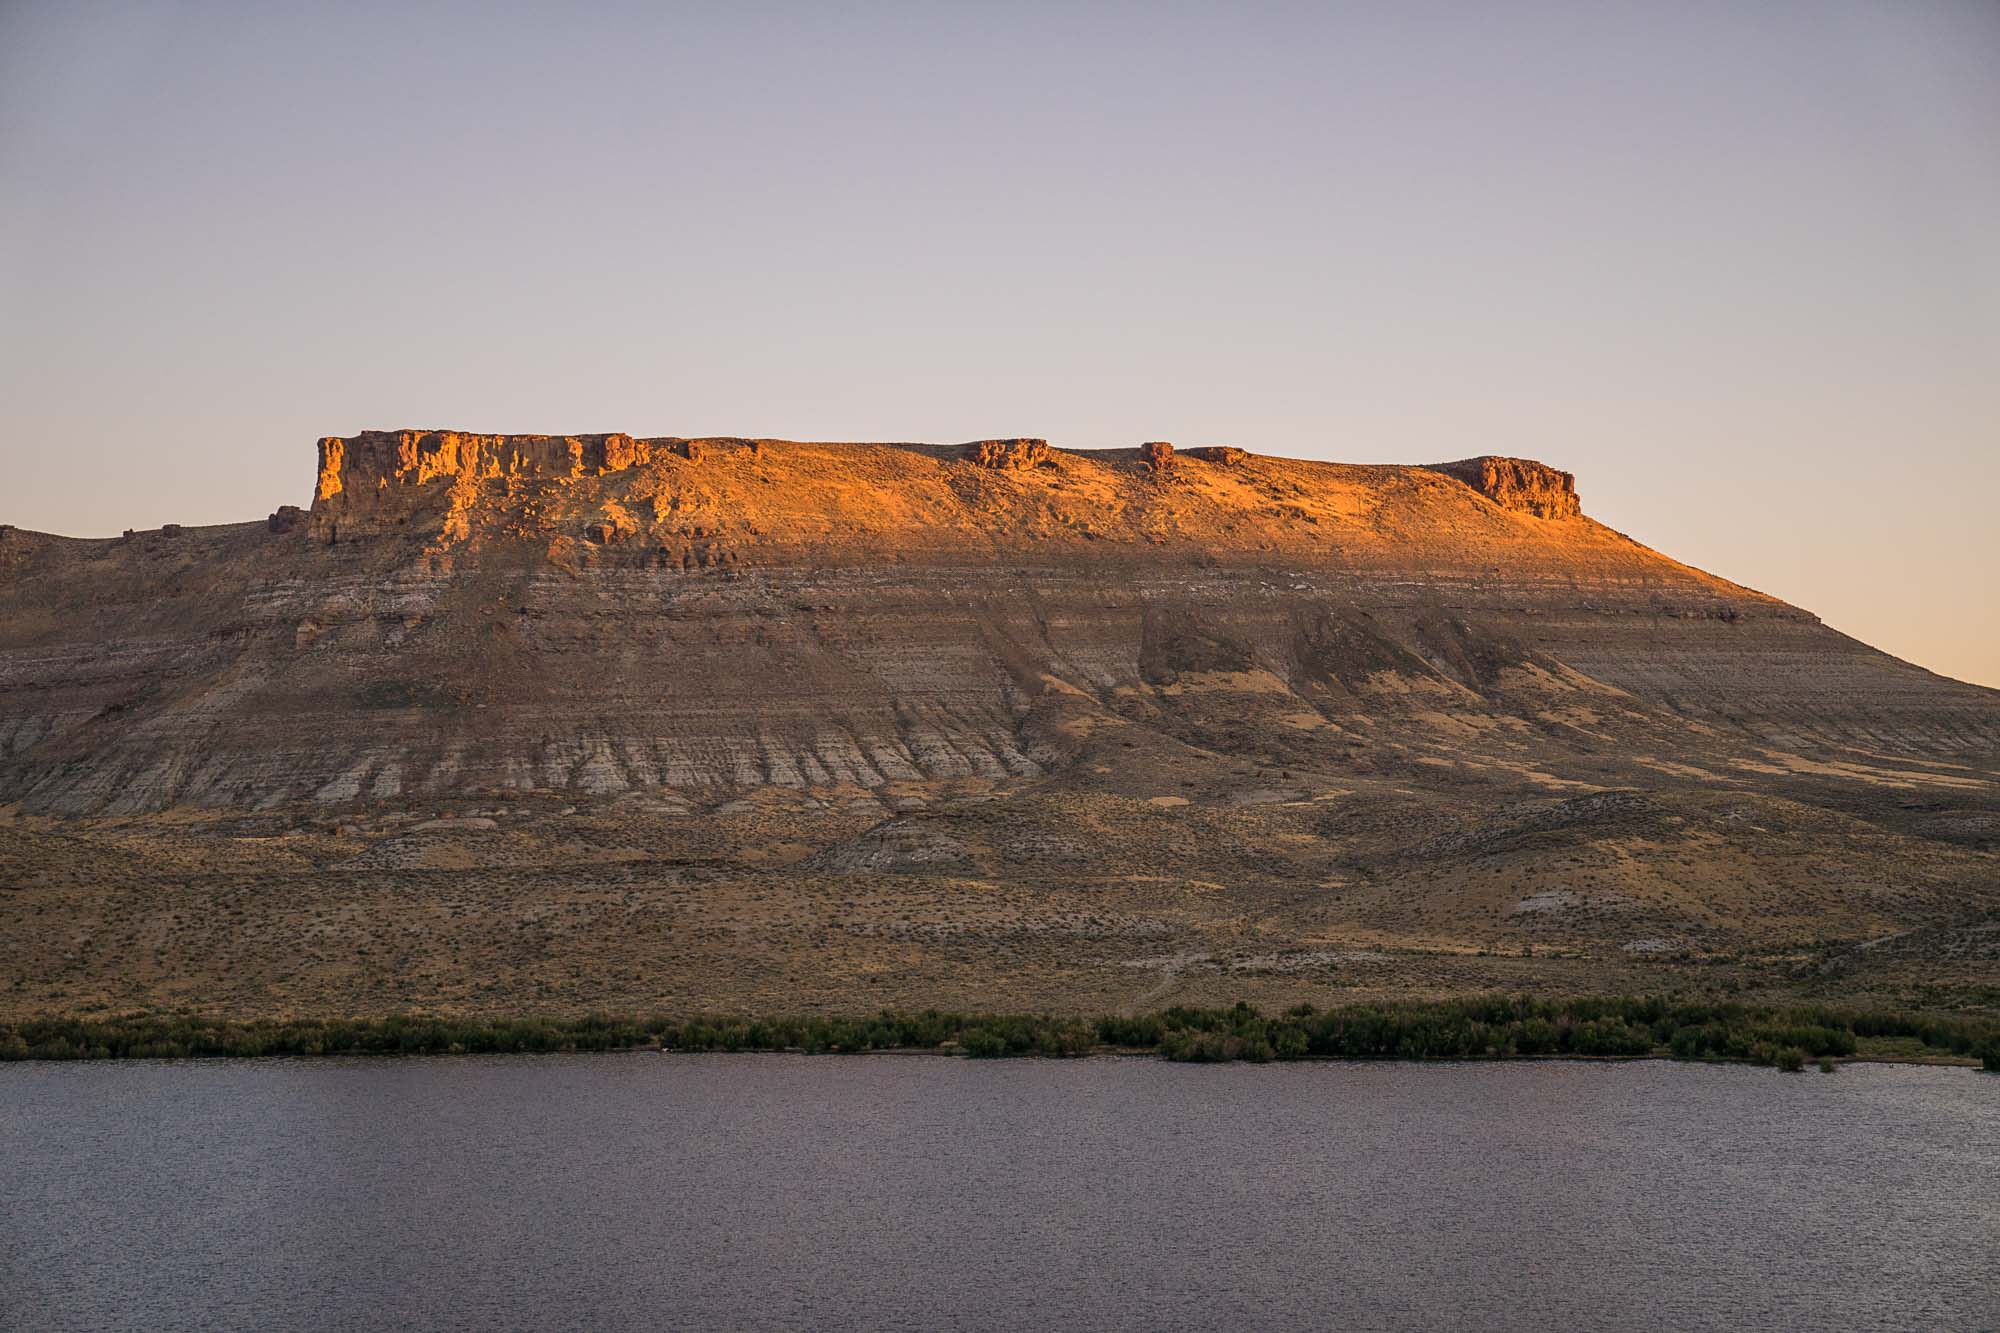 Firehole Canyon in Green River, Wyoming.